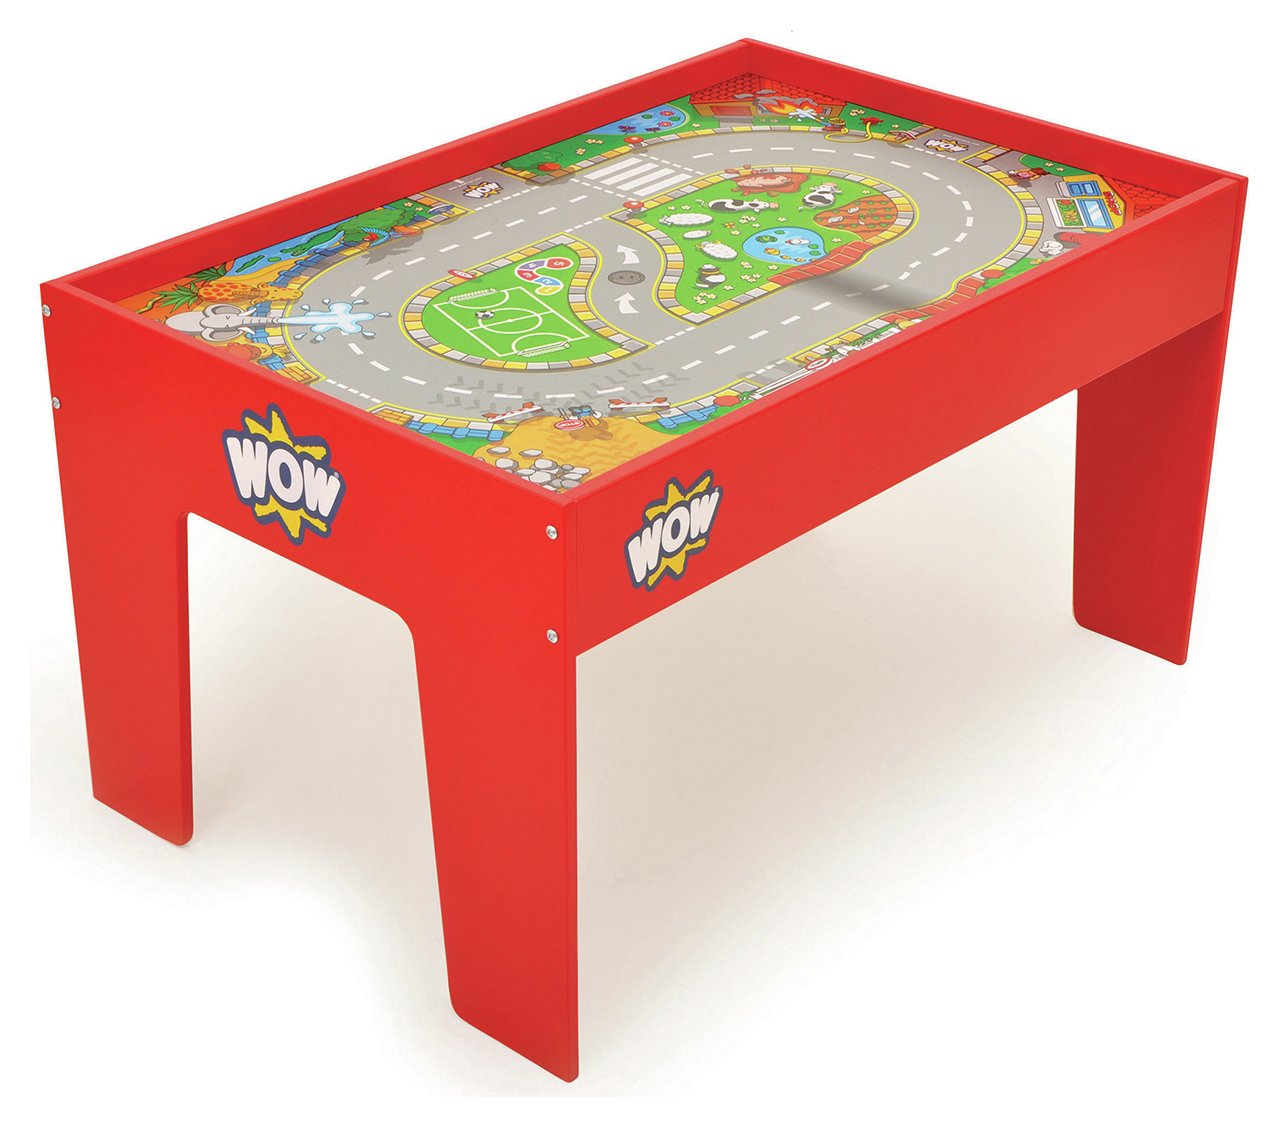 Wow Toys - Toy Activity table.